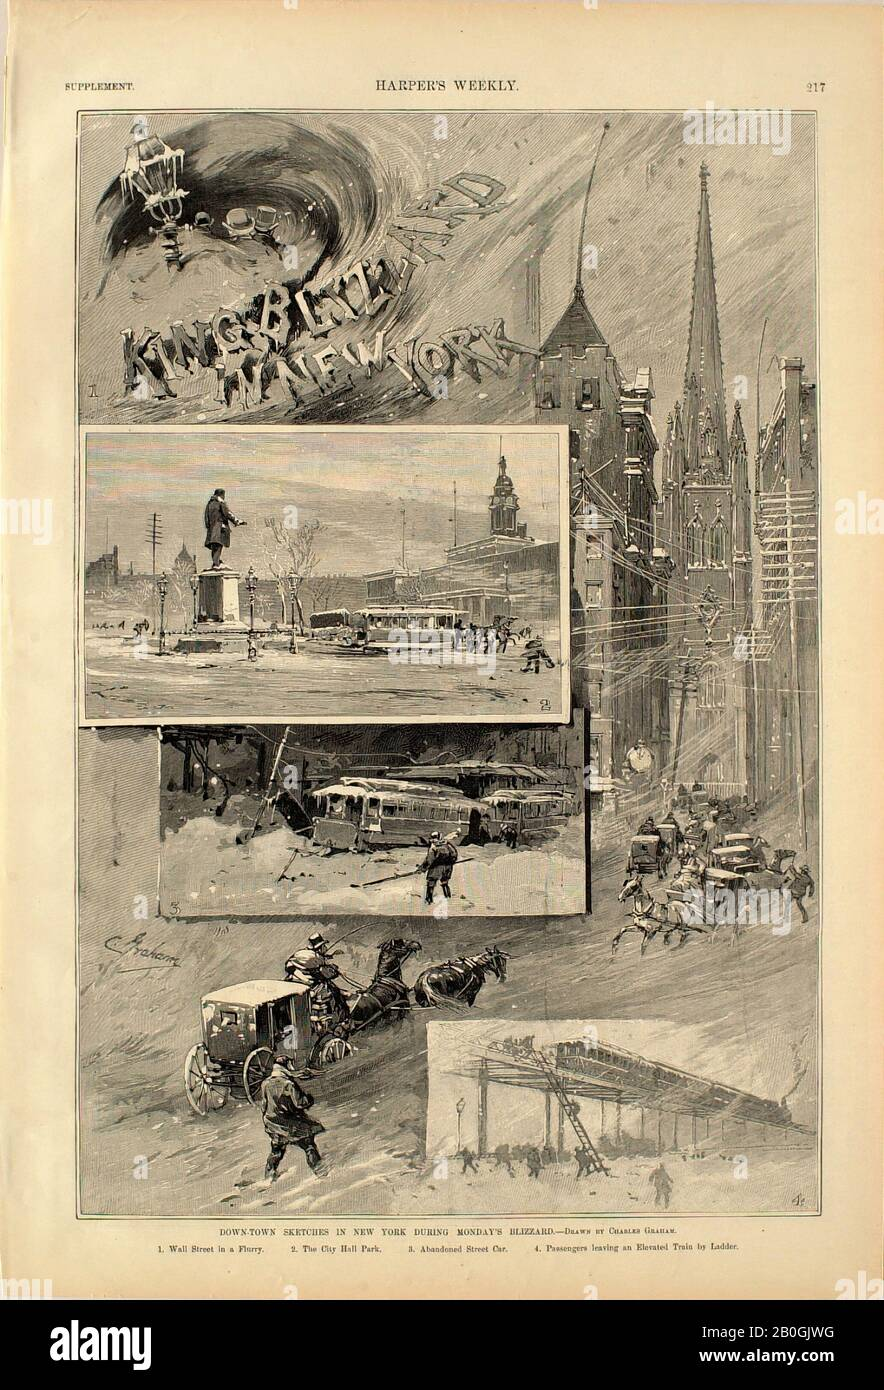 Otto Stark, American, 1859–1926, Charles Graham, (American, 1852–1911), Down-Town Sketches in New York During Monday's Blizzard (recto), 1888, Wood engraving on paper, image: 13 9/16 x 9 1/8 in. (34.4 x 23.1 cm Stock Photo